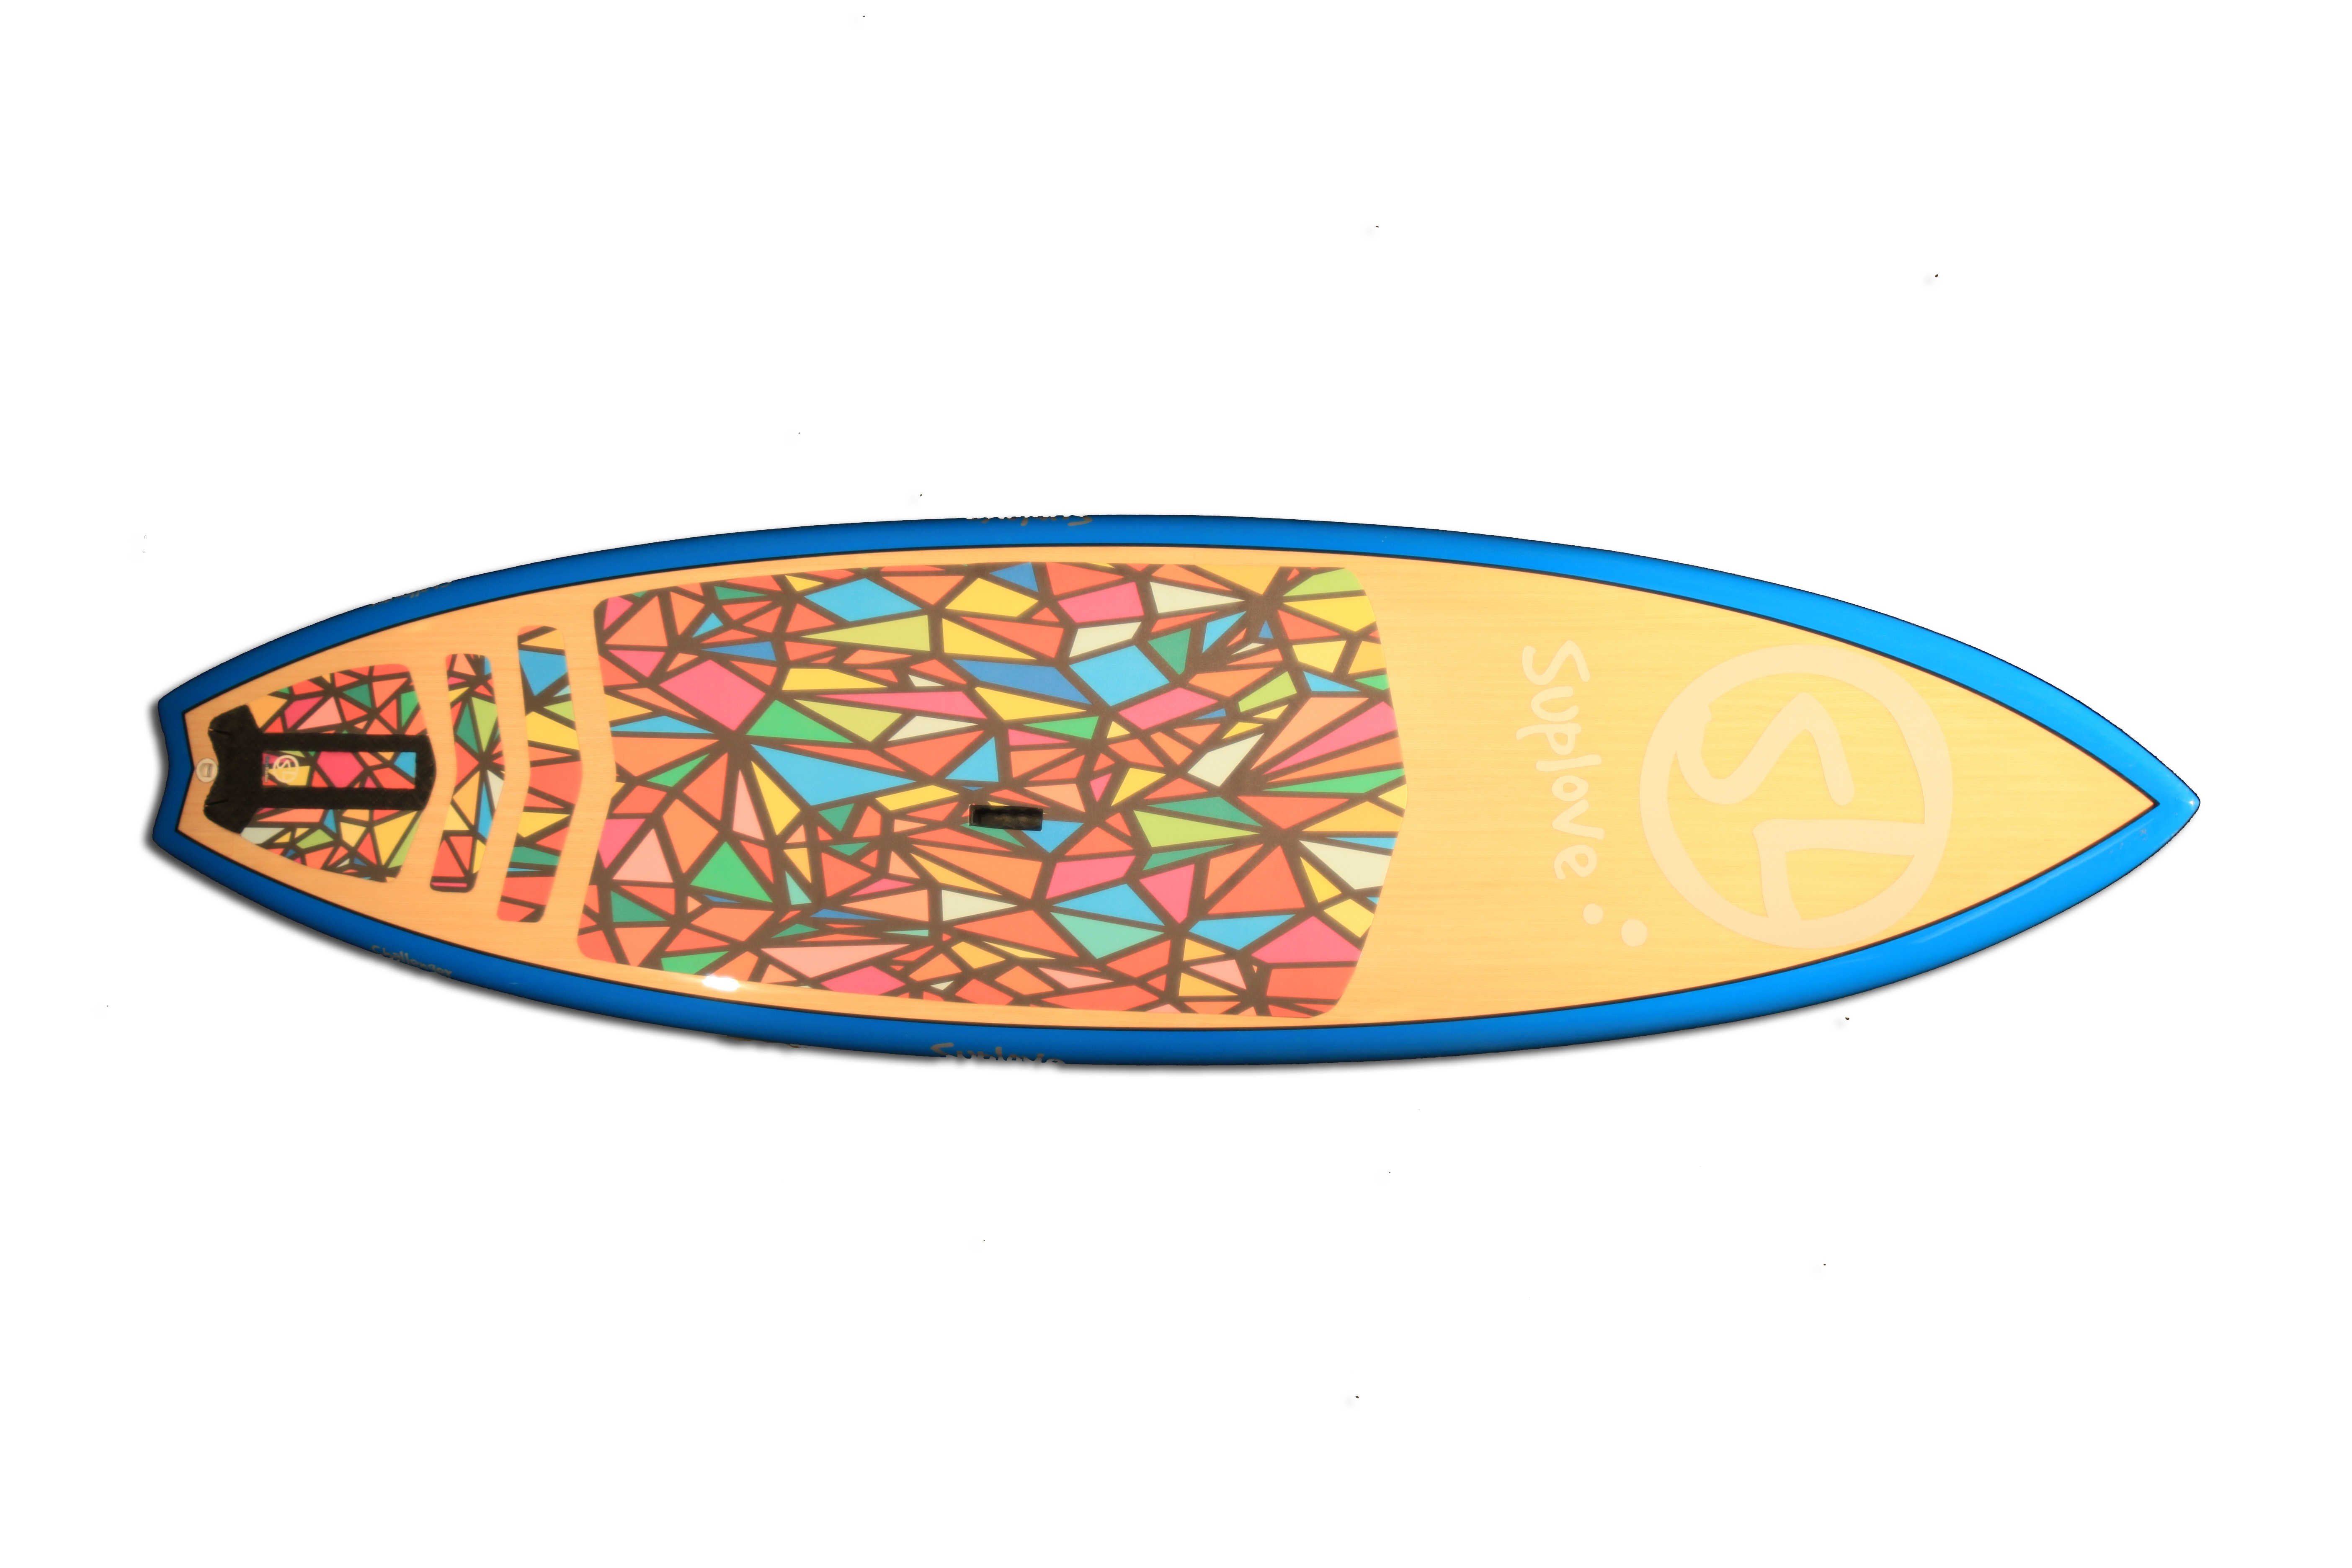 suplove-challenger-1180-stand-up-paddle-performance-surf